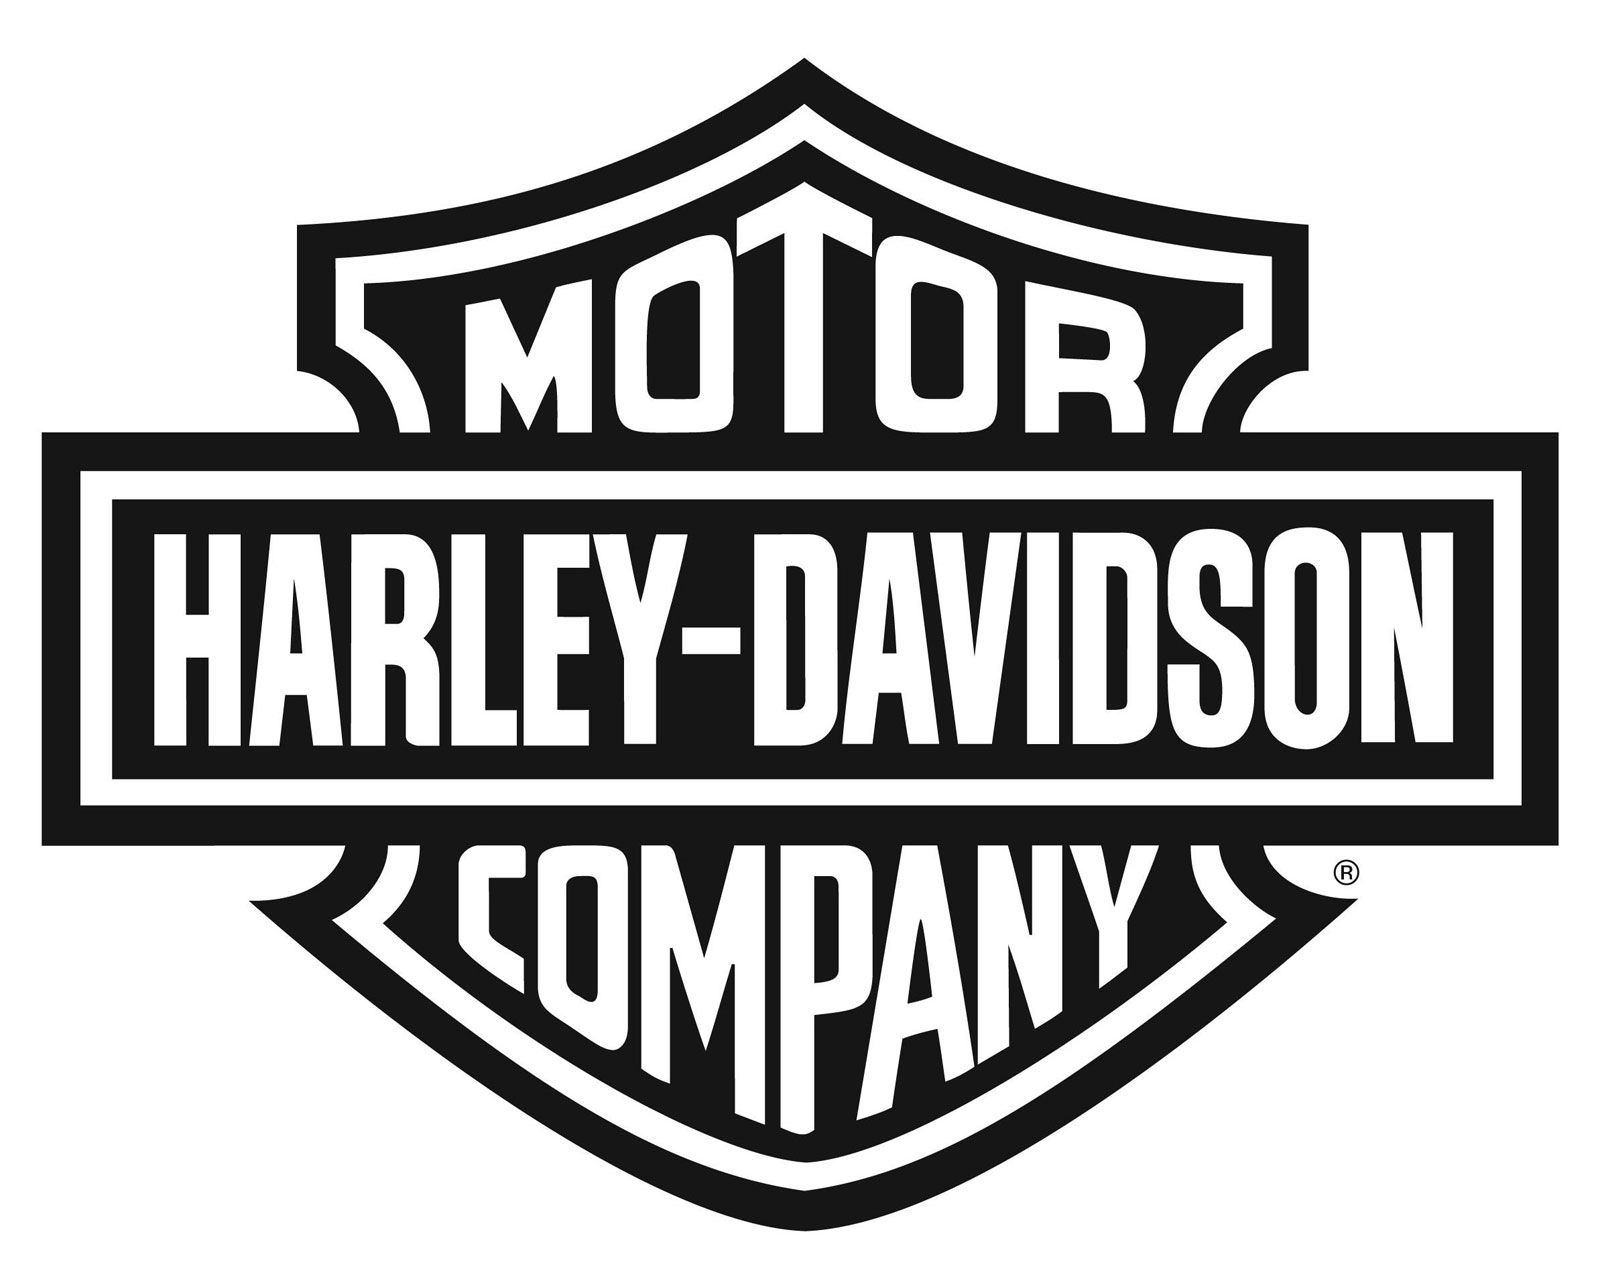 1600x1285px Harley Davidson Logo Wallpapers Harley Davidson Motorcycles Motor Harley Davidson Cycles Harley Davidson Logo